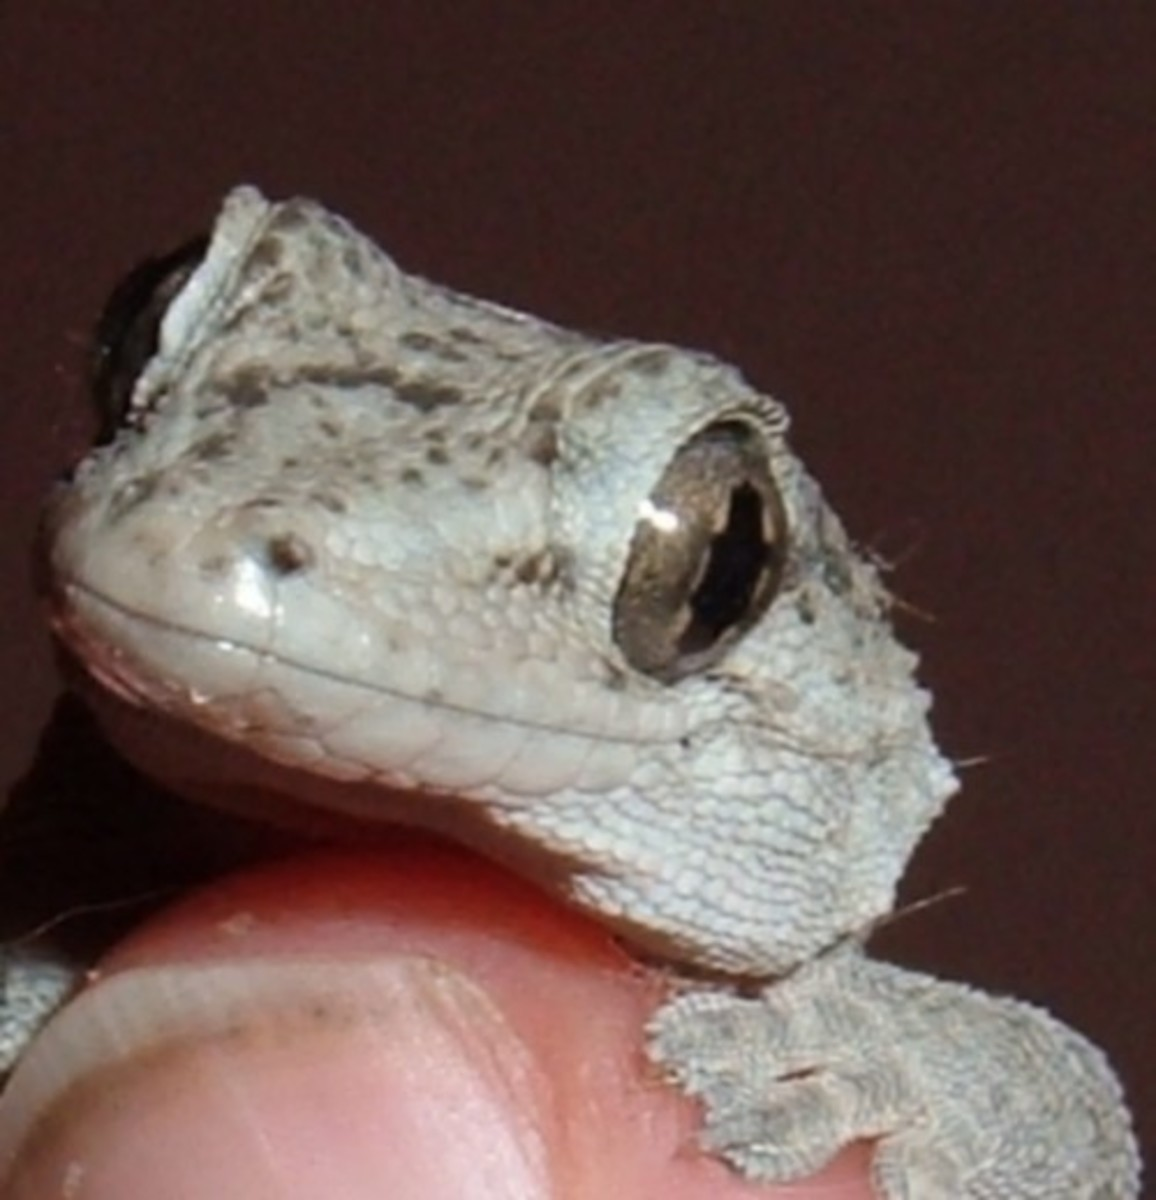 Tenerife in the Canary Islands has lizards, geckos and skinks but no snakes